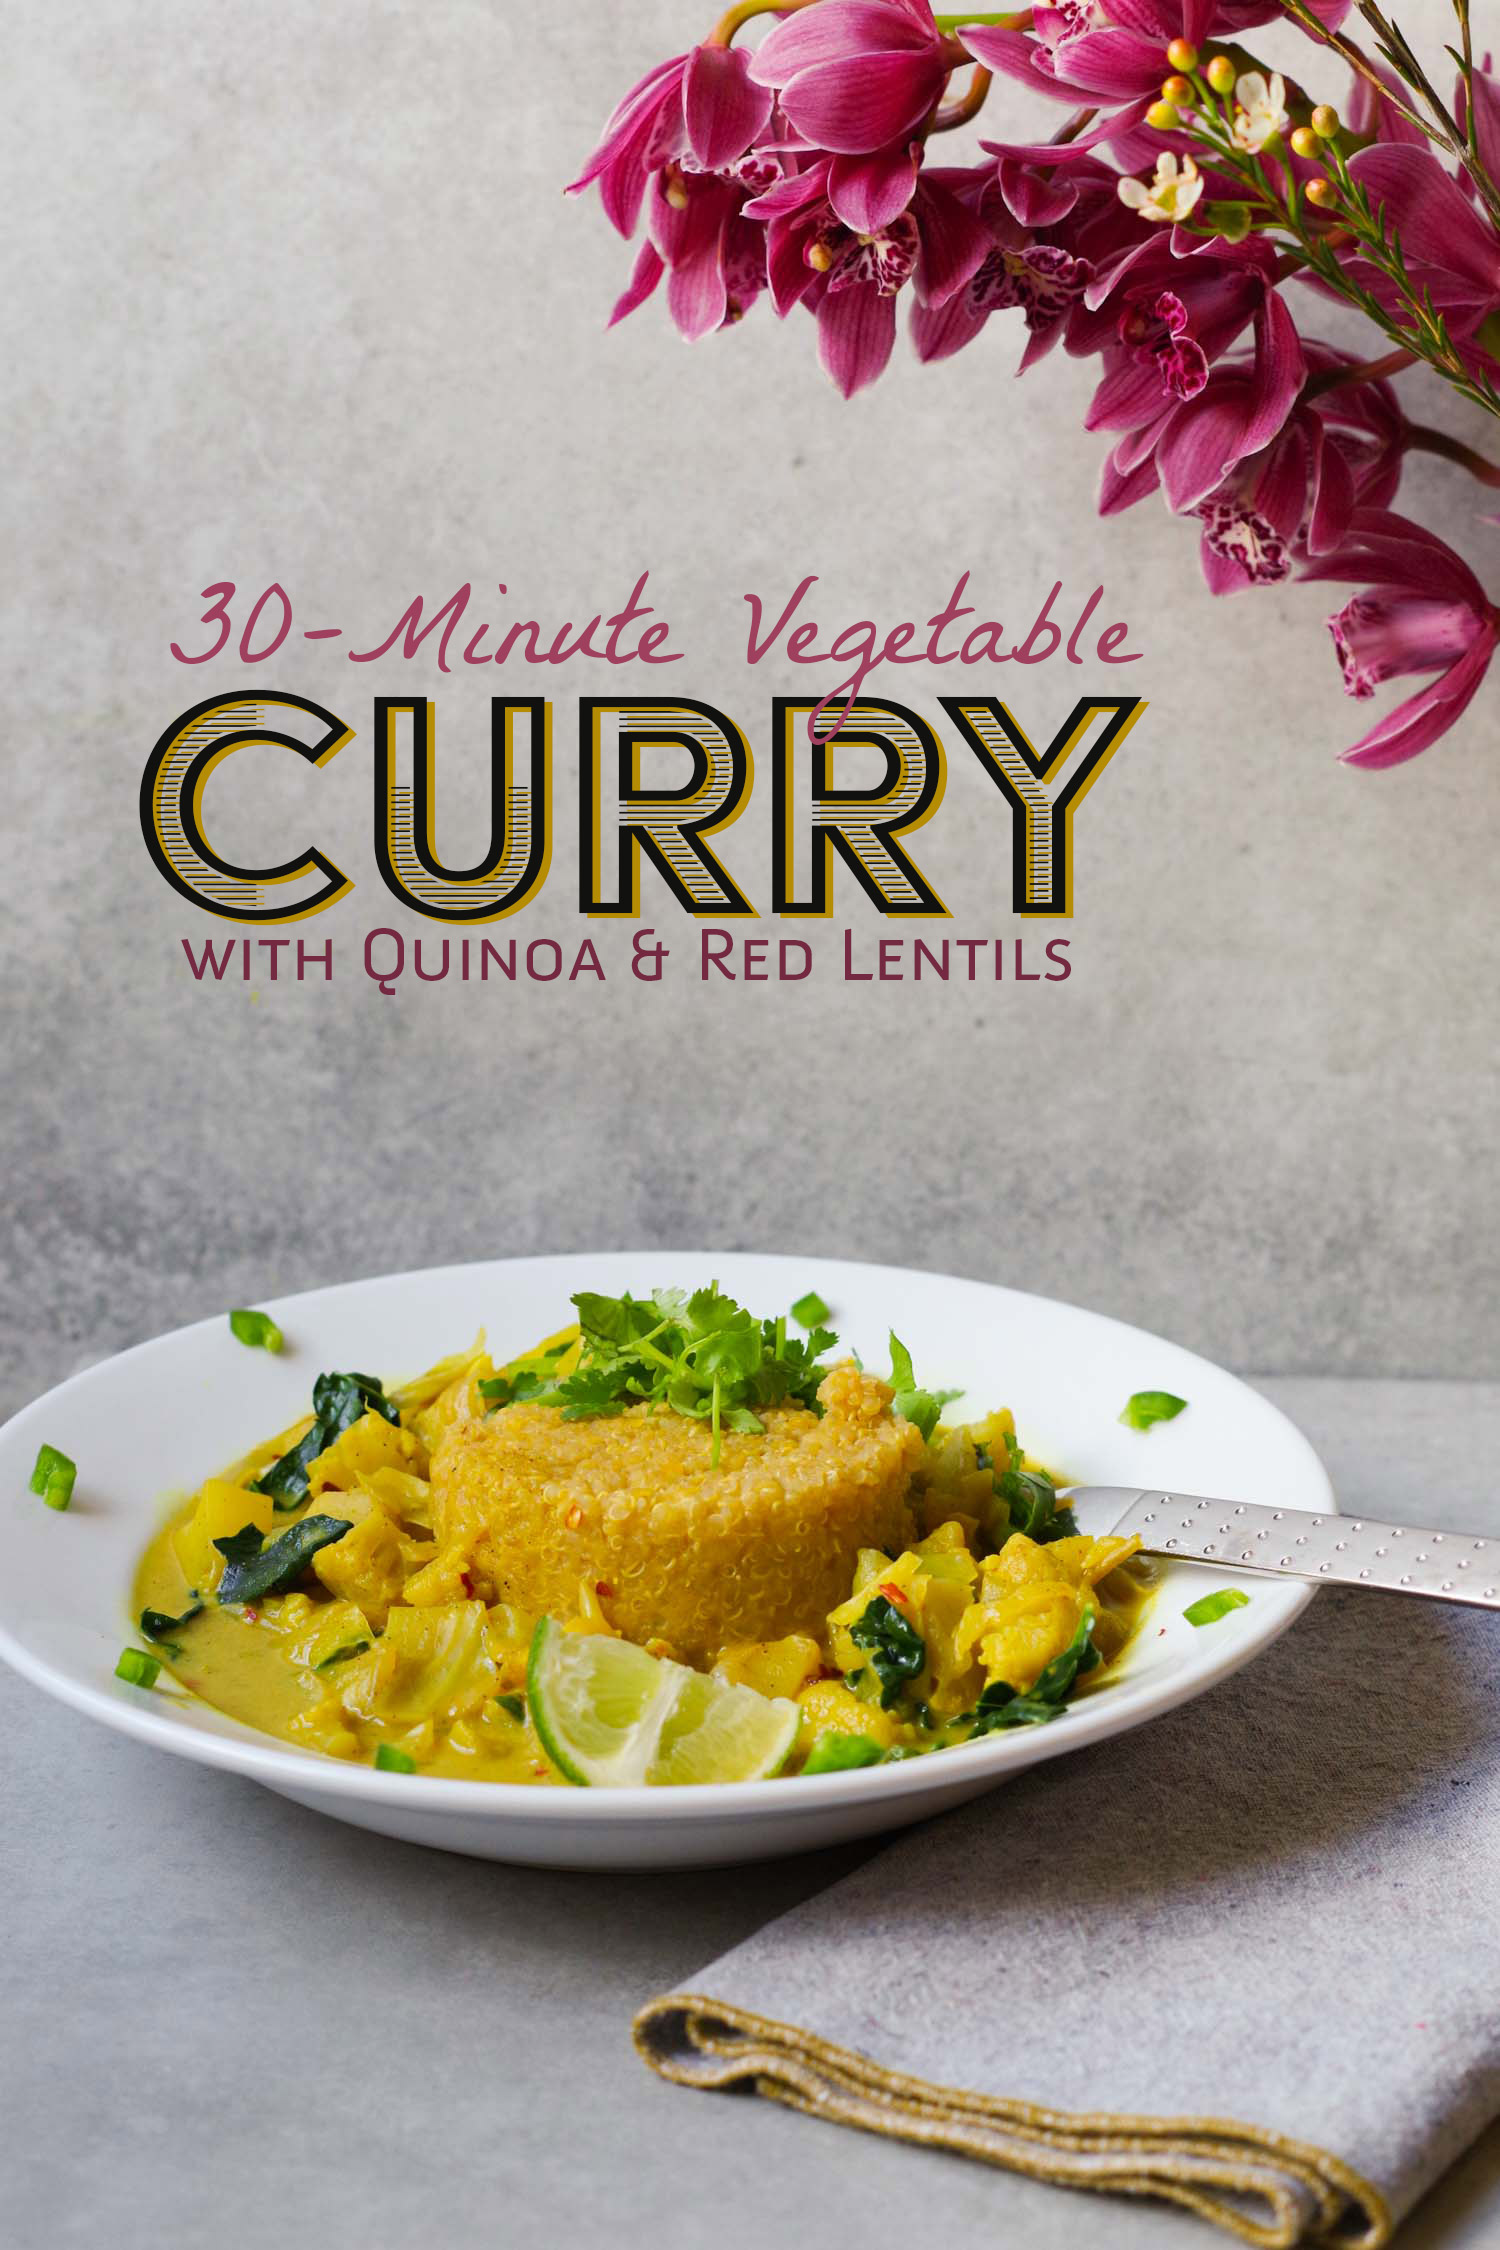 30-minute vegetable curry with quinoa and red lentils, by beautiful ingredient